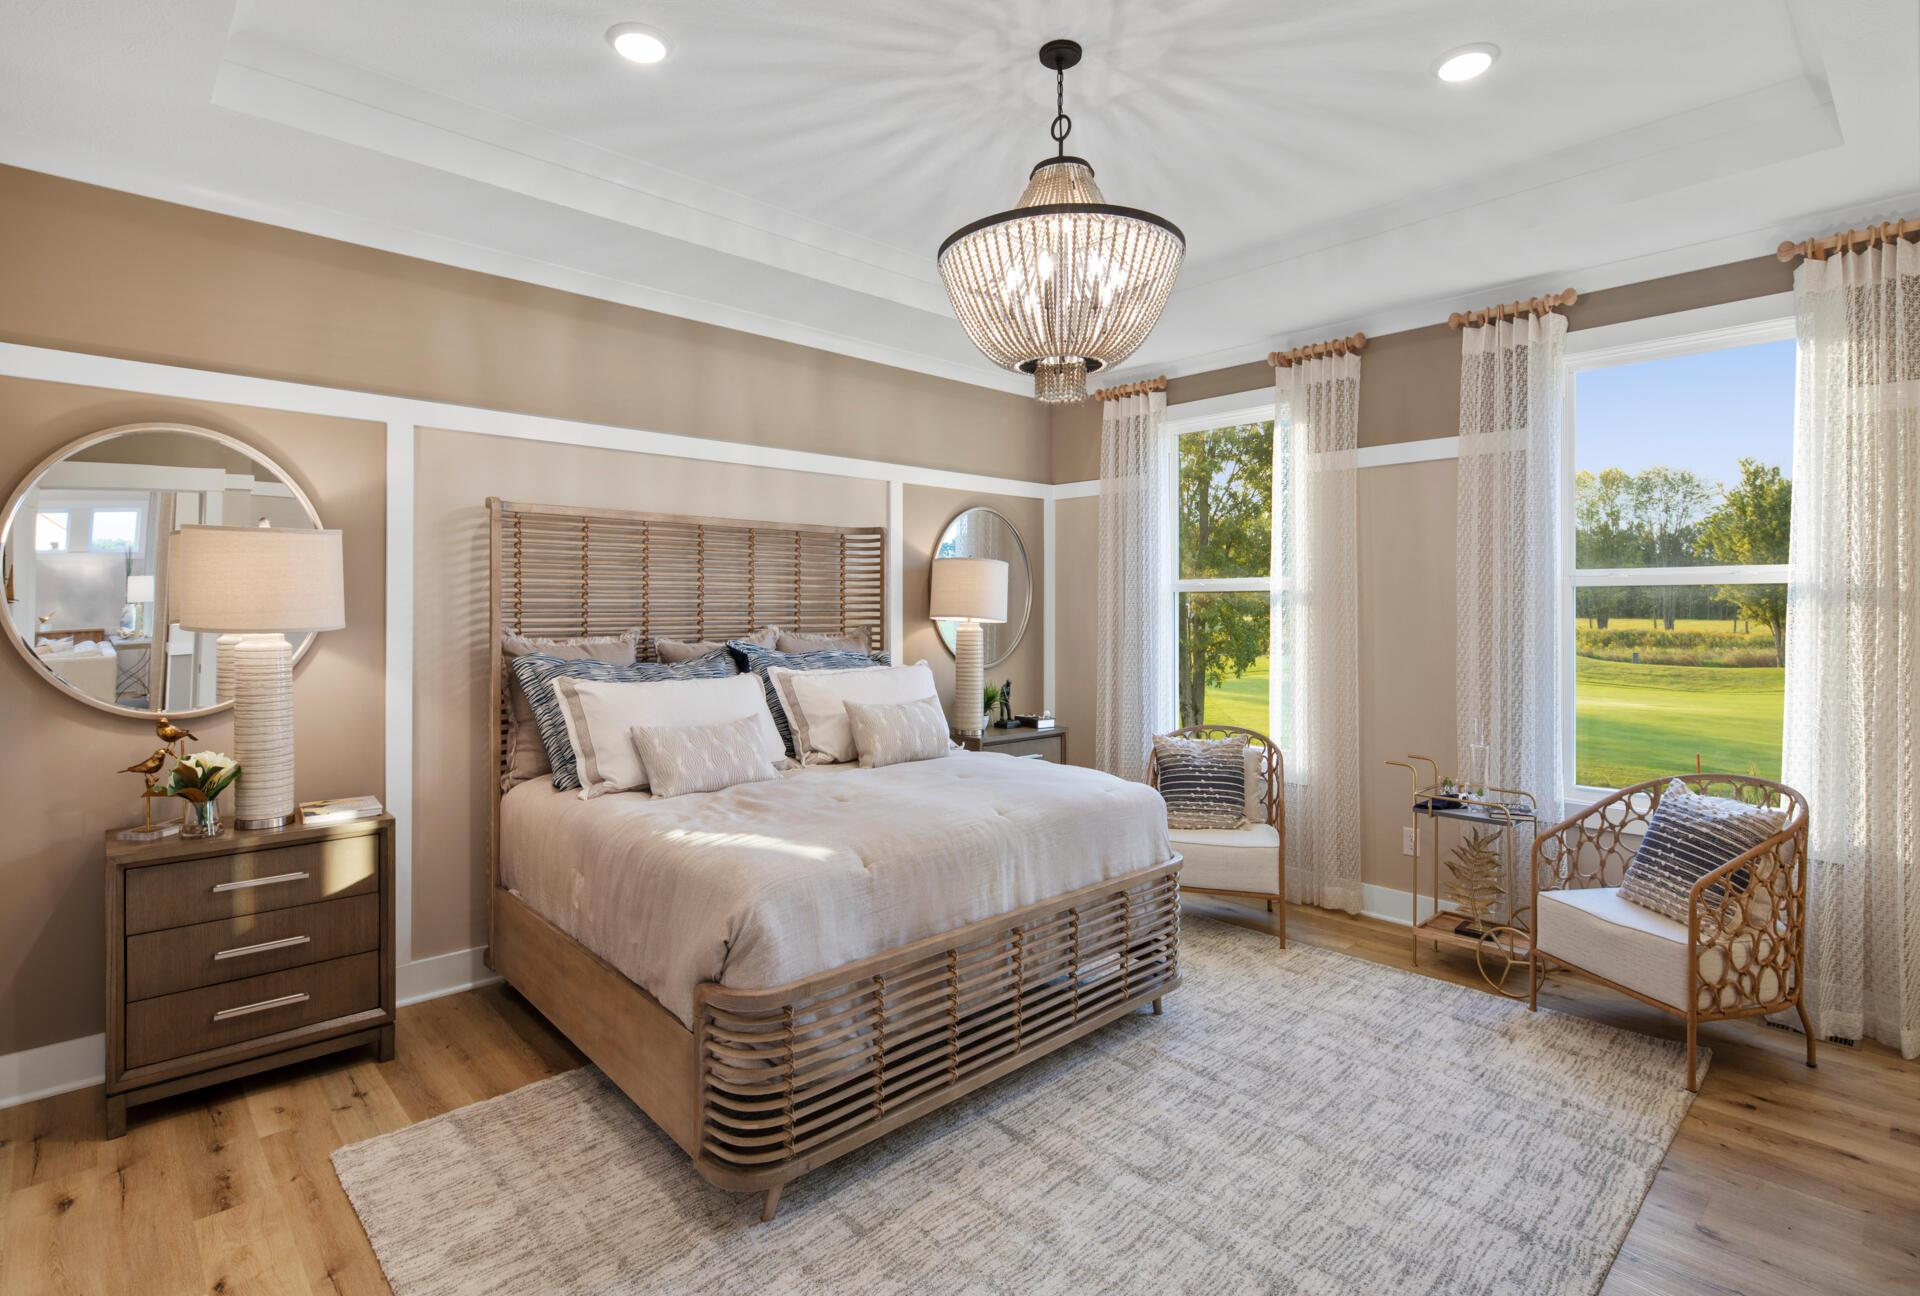 Bedroom featured in the Cohen By Drees Homes in Cleveland, OH